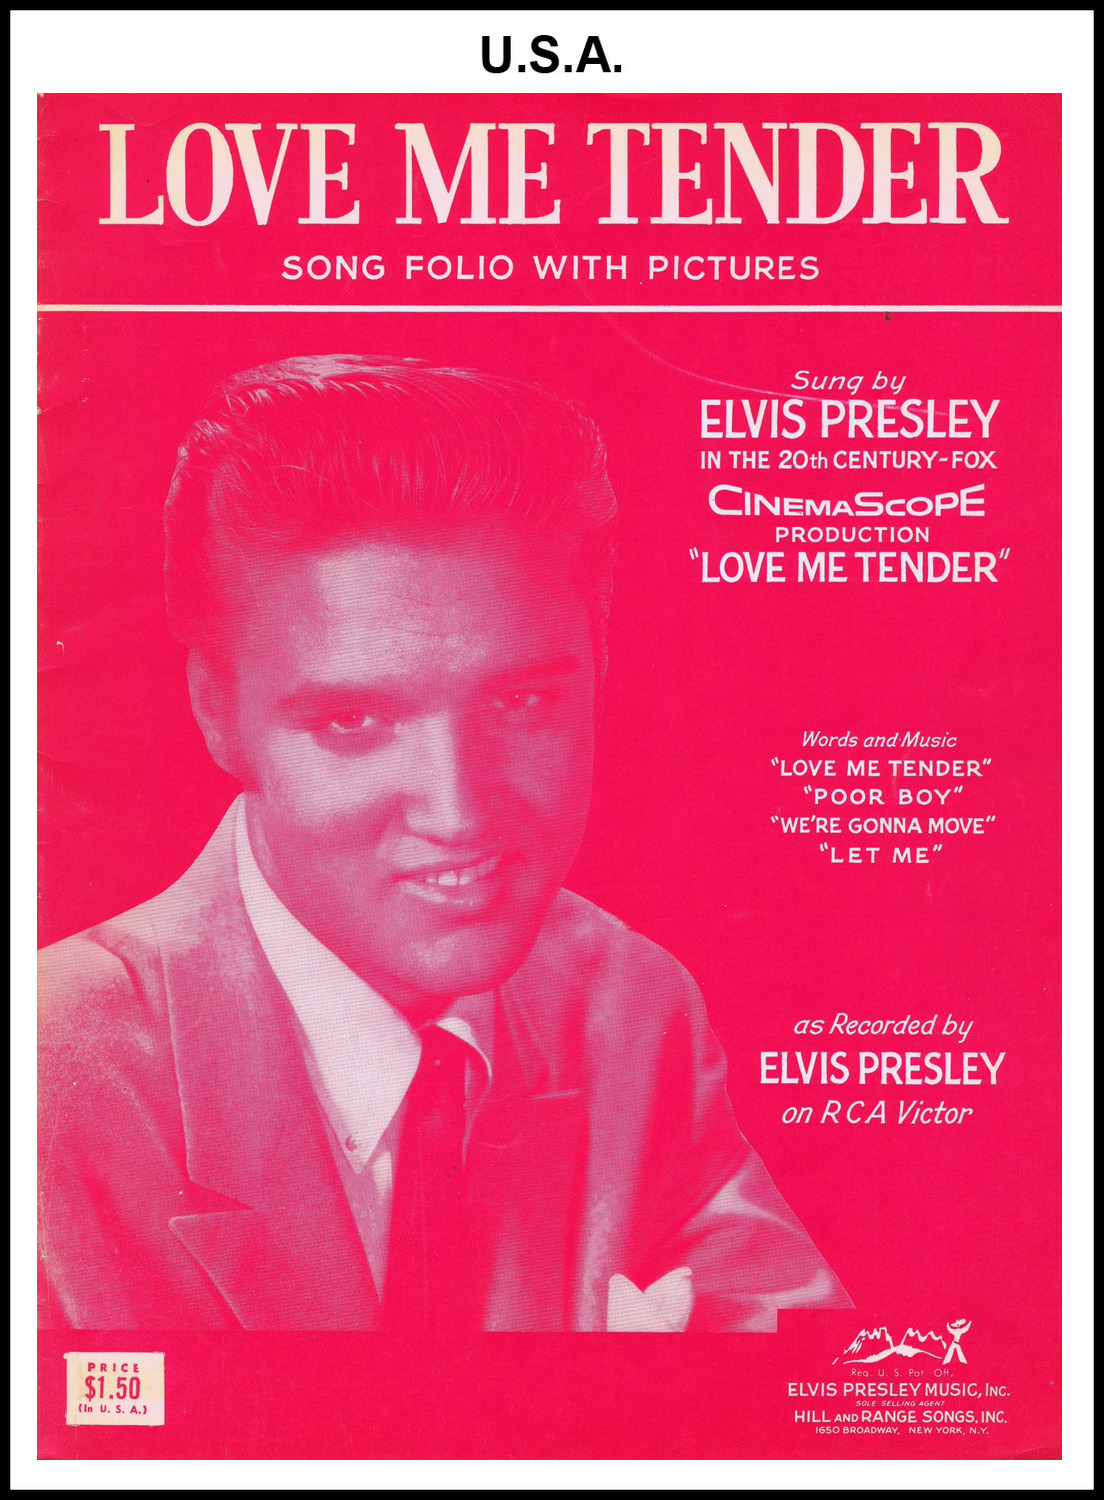 1956 - Love Me Tender Song Folio front (USA 1.50)